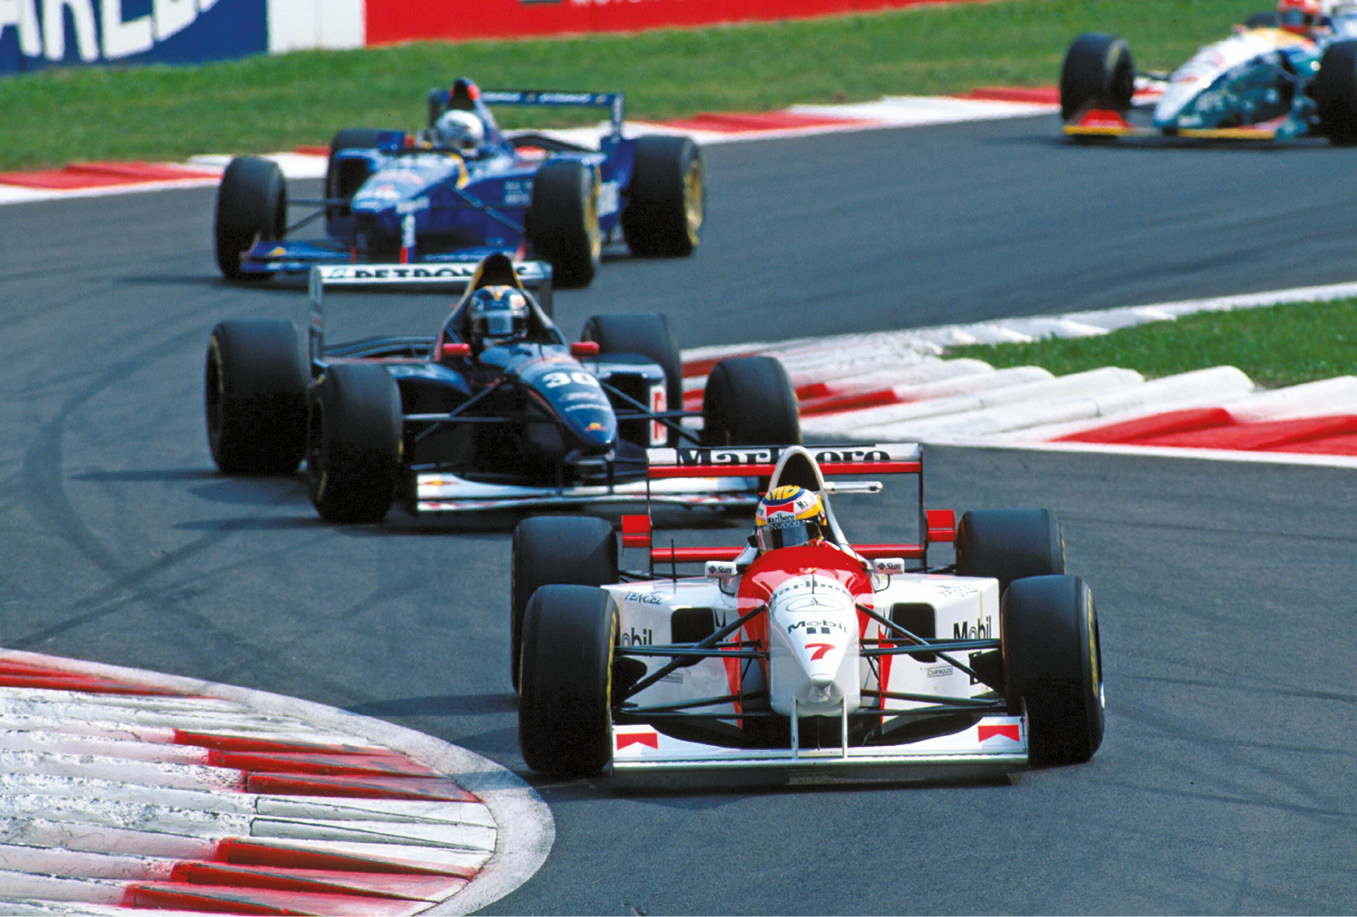 Mark Blundell suffered in his McLaren, only managing 10th in the championship.